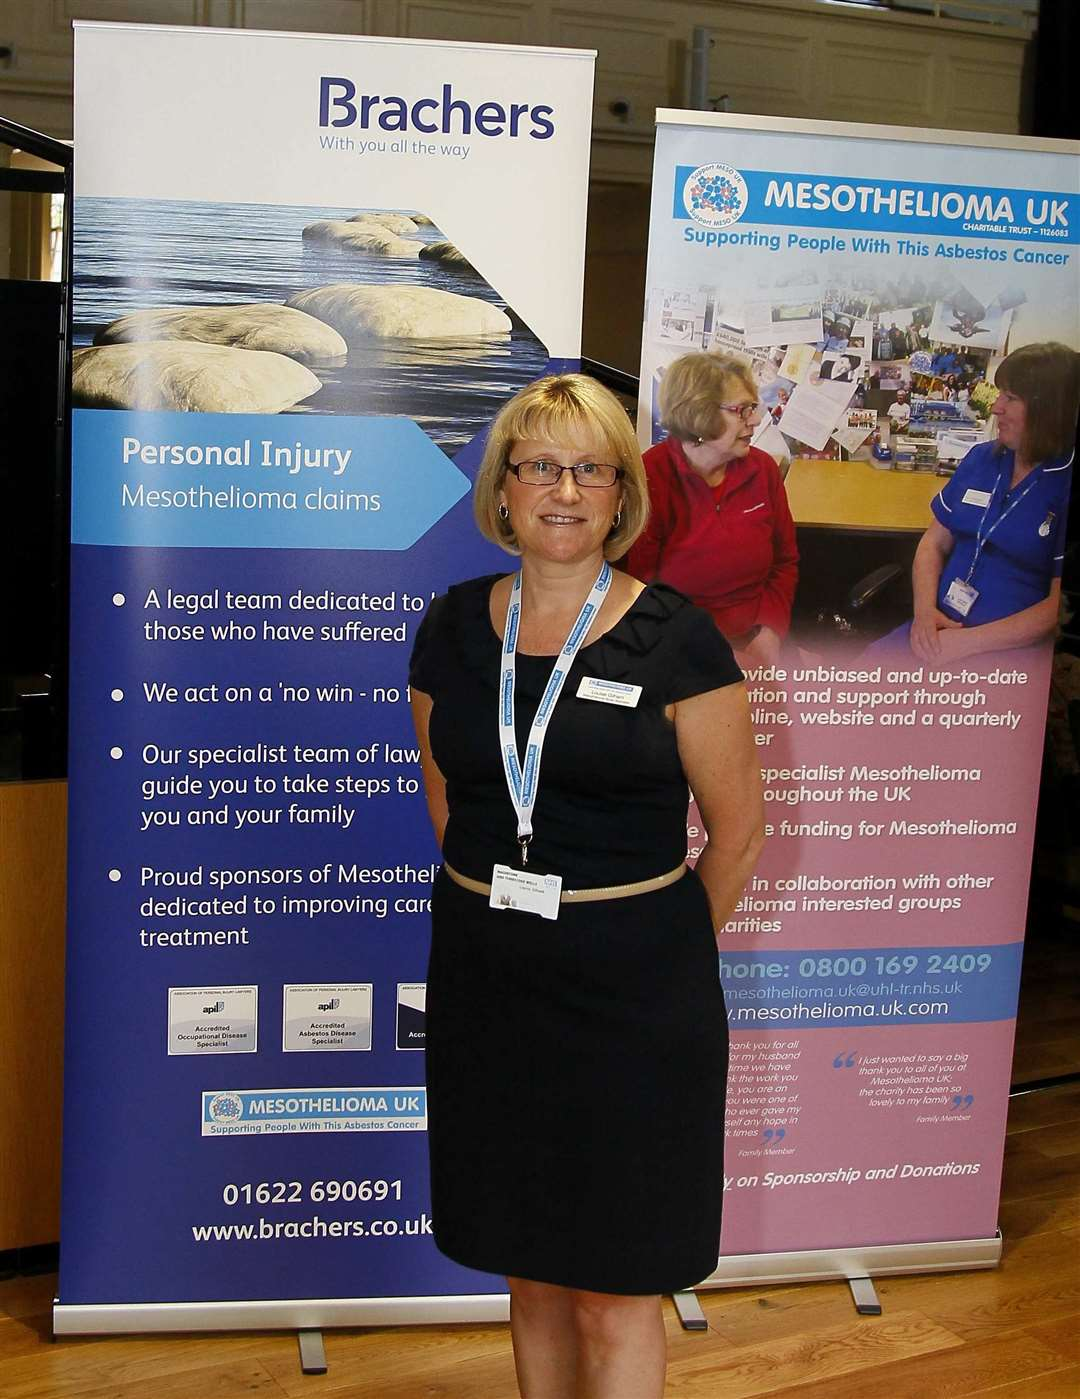 The Annual Action Mesothelioma Day, was attended by Louise Gilham, Mesothelioma clinical nurse specialist for Kent.